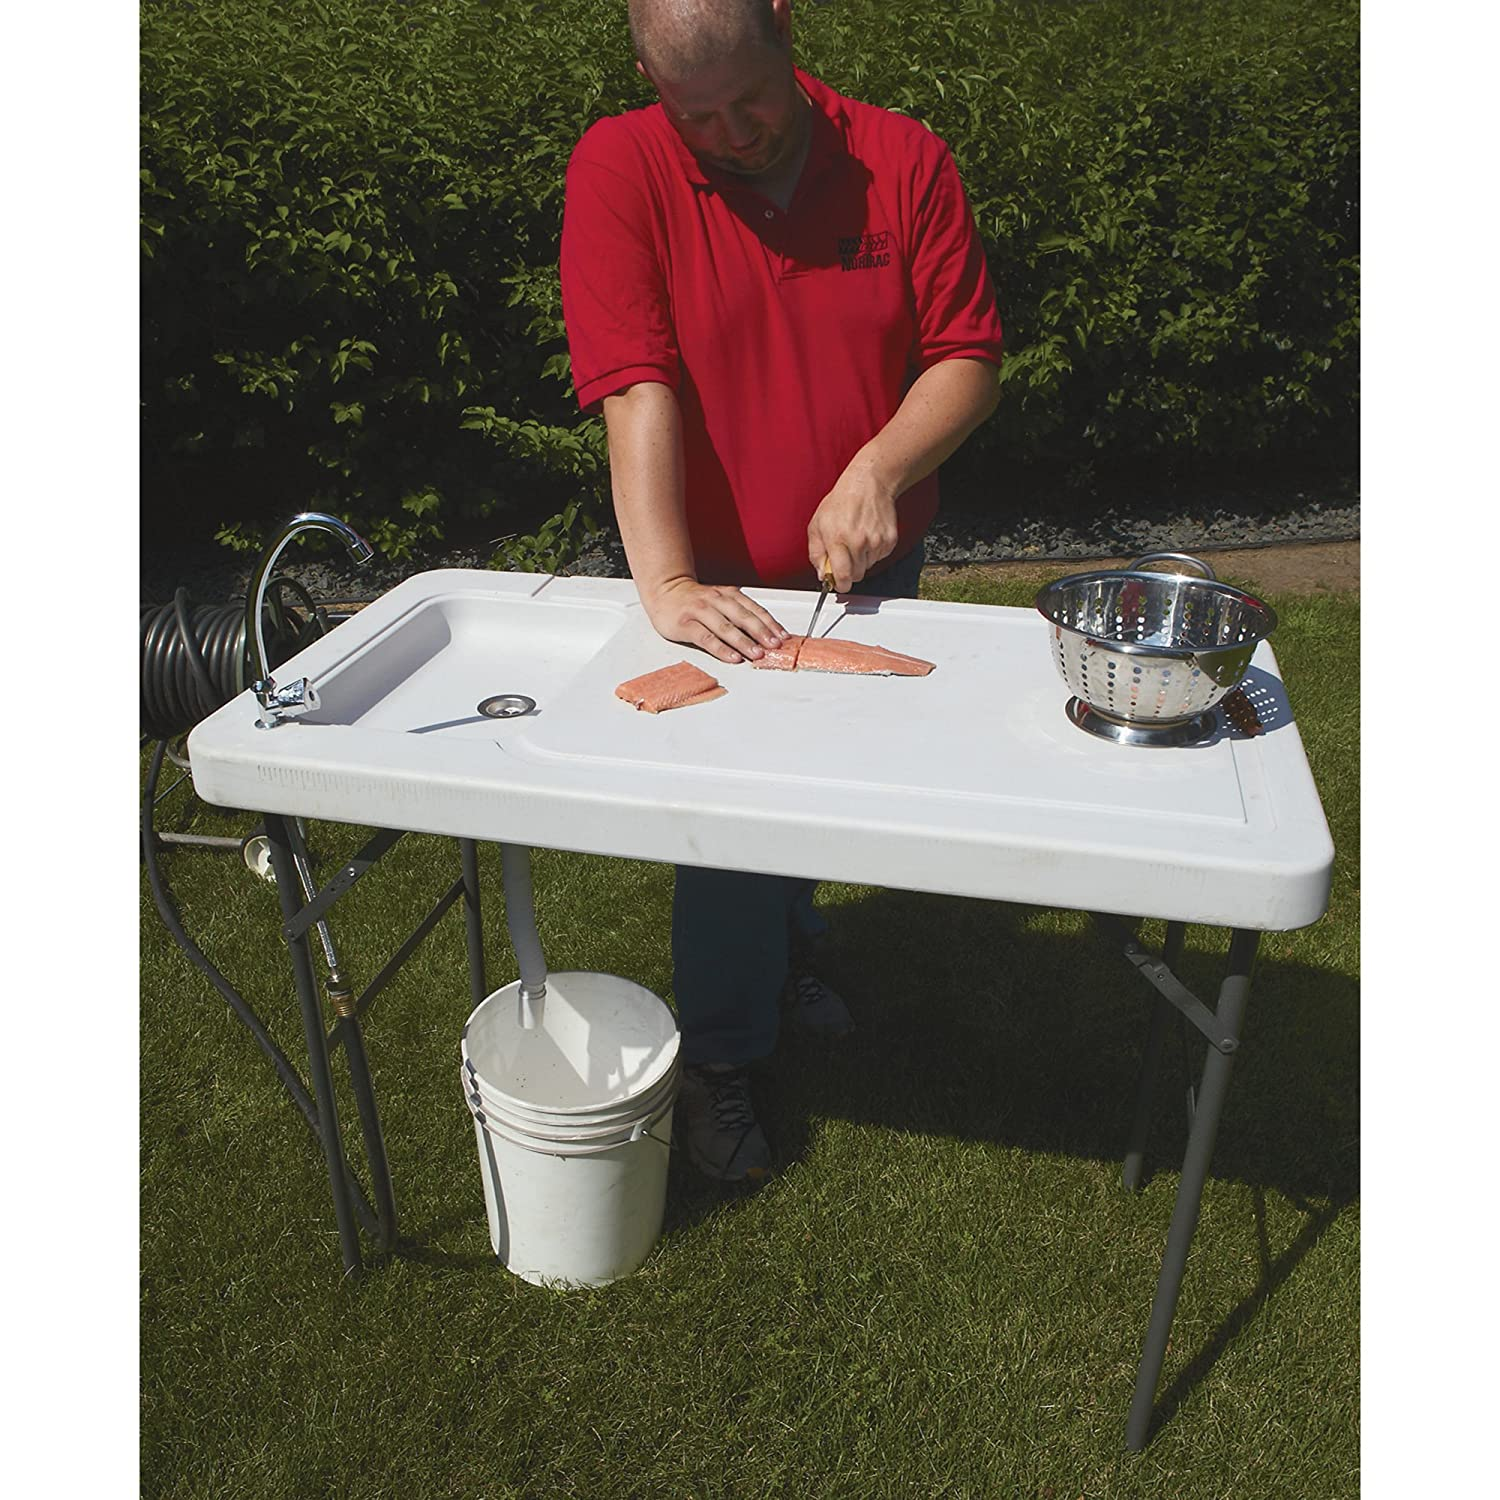 Amazon.com : Fish Cleaning Camp Table With Faucet : Sports & Outdoors